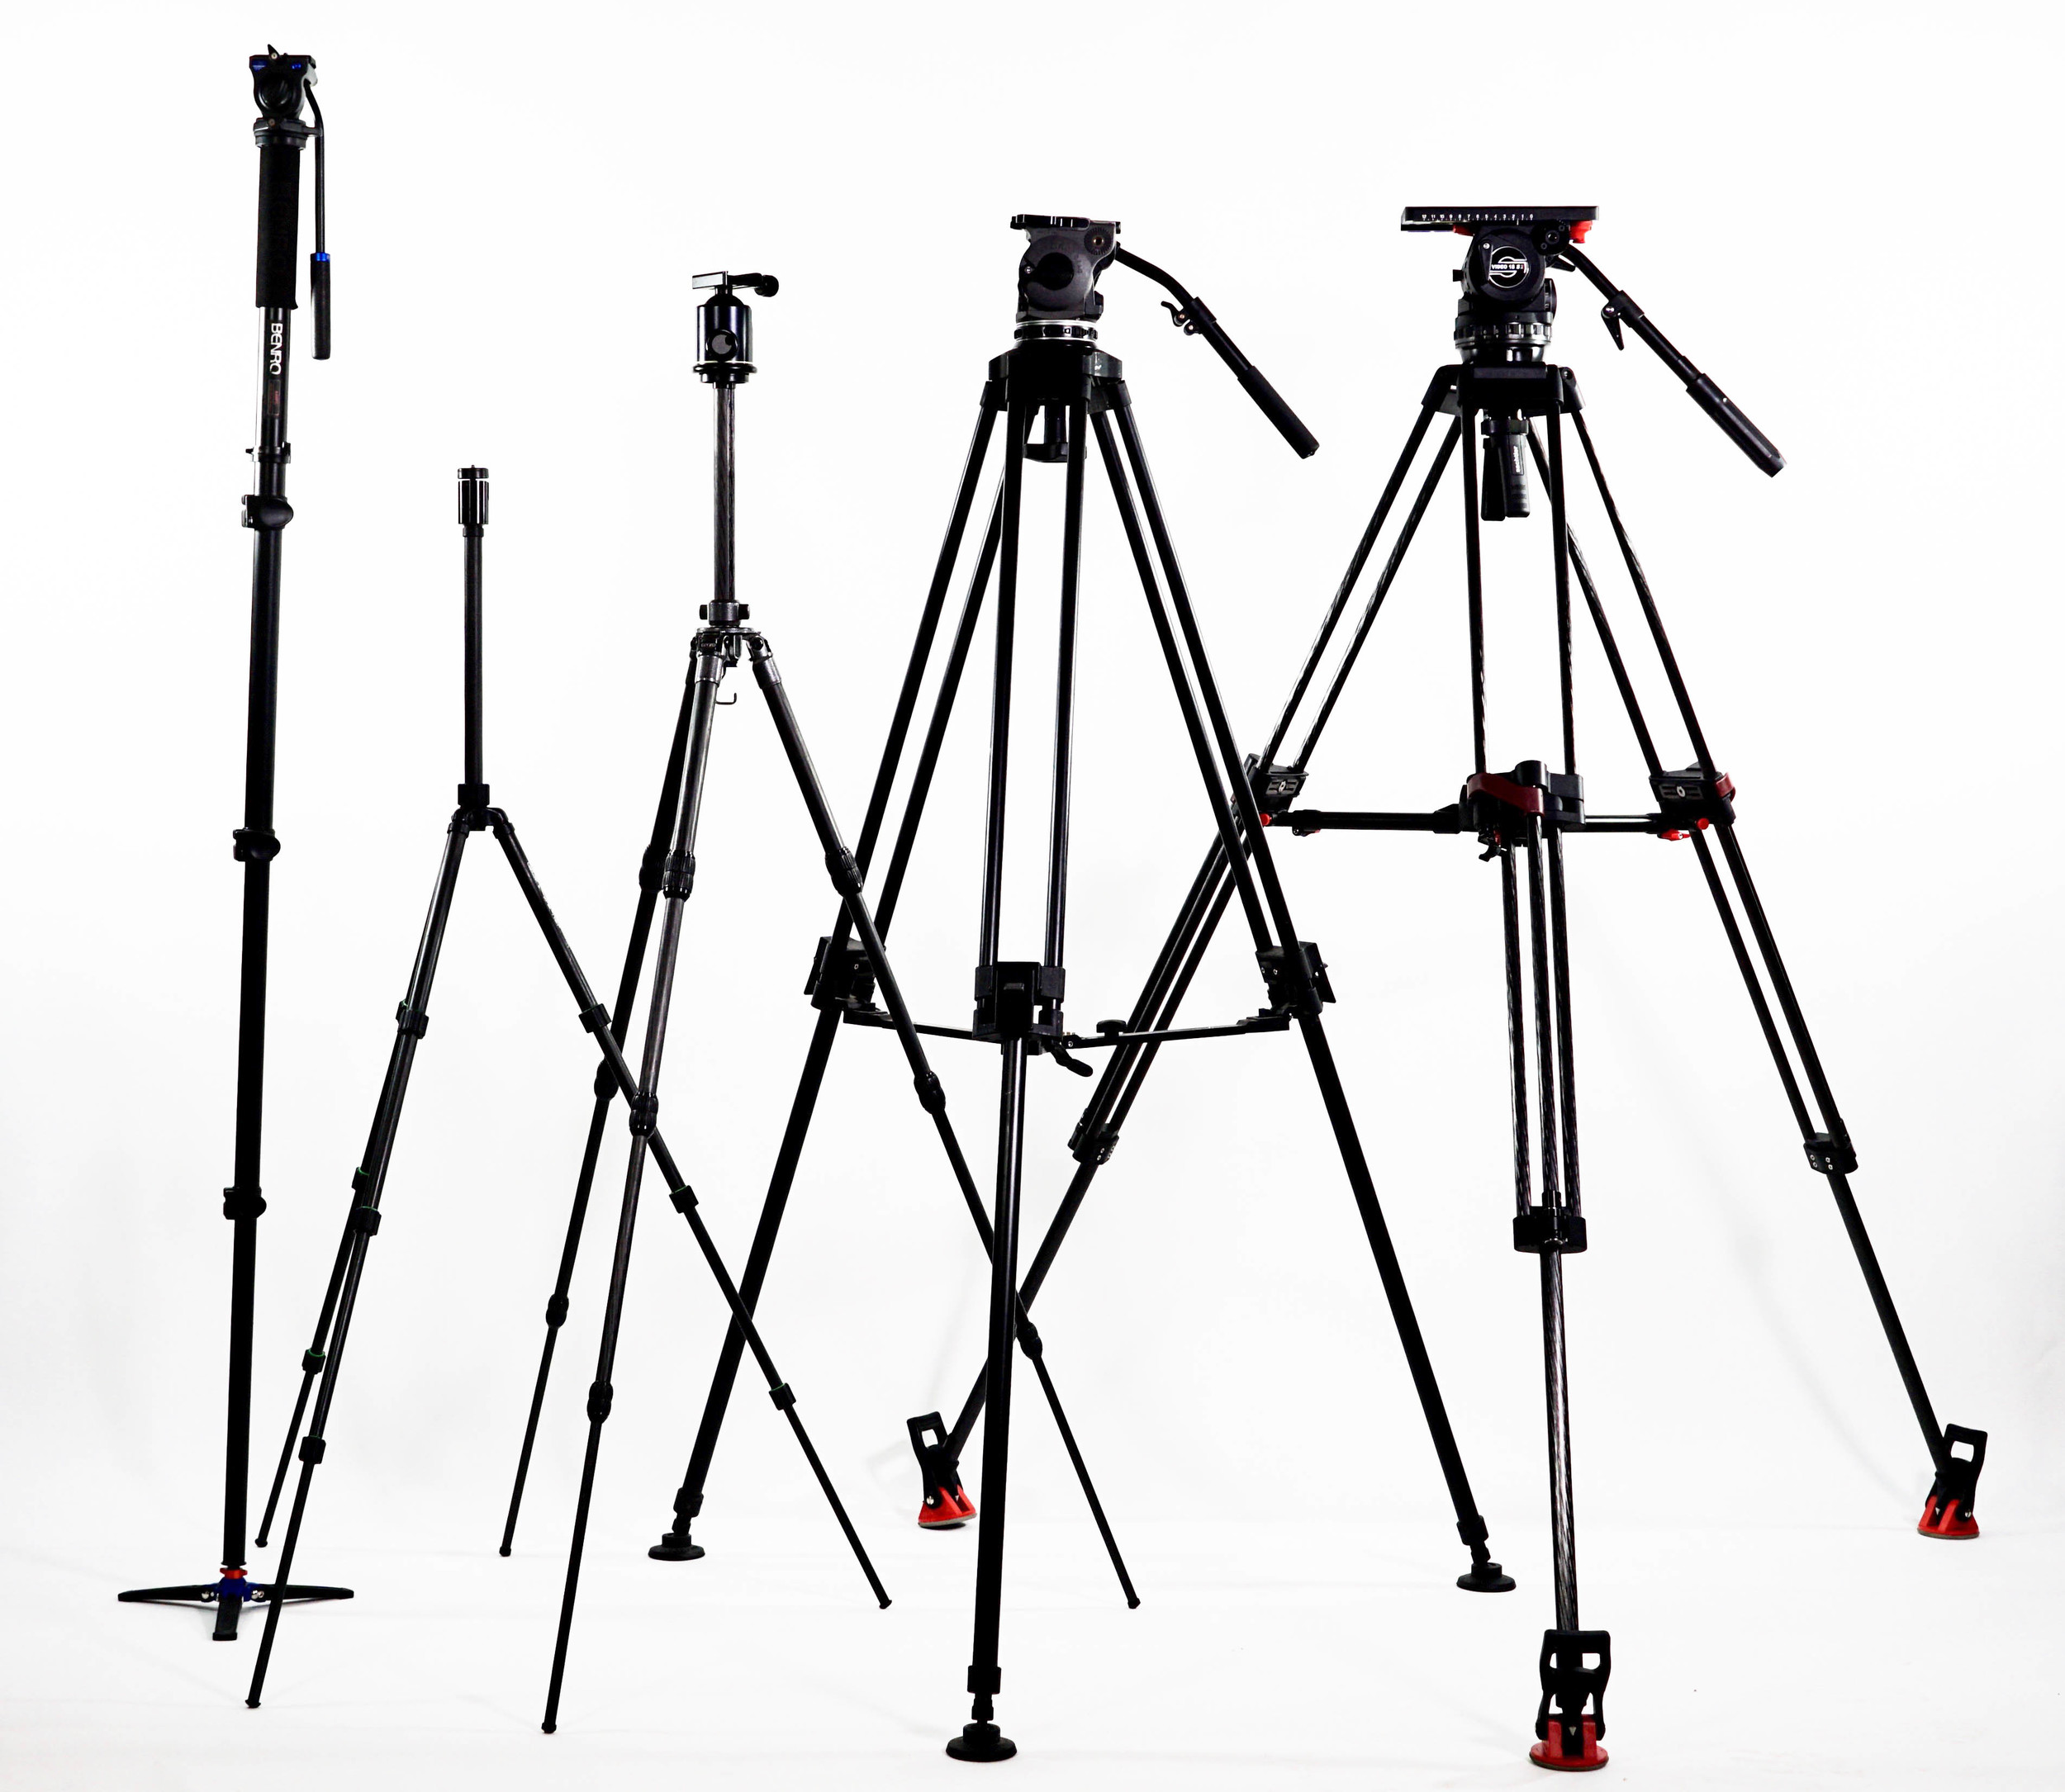 From left to right:  Benro A48FD monopod  with  S2 head (well under $200 for the pair),old Cullman aluminum tripod with integrated mini ball head (closest thing to it still in production is probably the  $80 Cullman Nanomax with Ball Head ),Gitzo G1128 Mk II Carbon Fiber tripod (closest thing to it in current production is the  GT2542 Mountaineer at   $869 )with Arca-Swiss Monoball Head ( $320 at B&H ), Sachtler Video 18 S2 atop Sachtler Speed Lock CF (100) legs, (s et for $8,010 at B&H ). I use the Gitzo/Arca-Swiss and/or Cartoni Focus to shoot most of my reviews or out in the field and the Benro when covering live events. I recently handed down the Cullman -- super light-weight and compact, perfect for iphoneography --to one of my children.